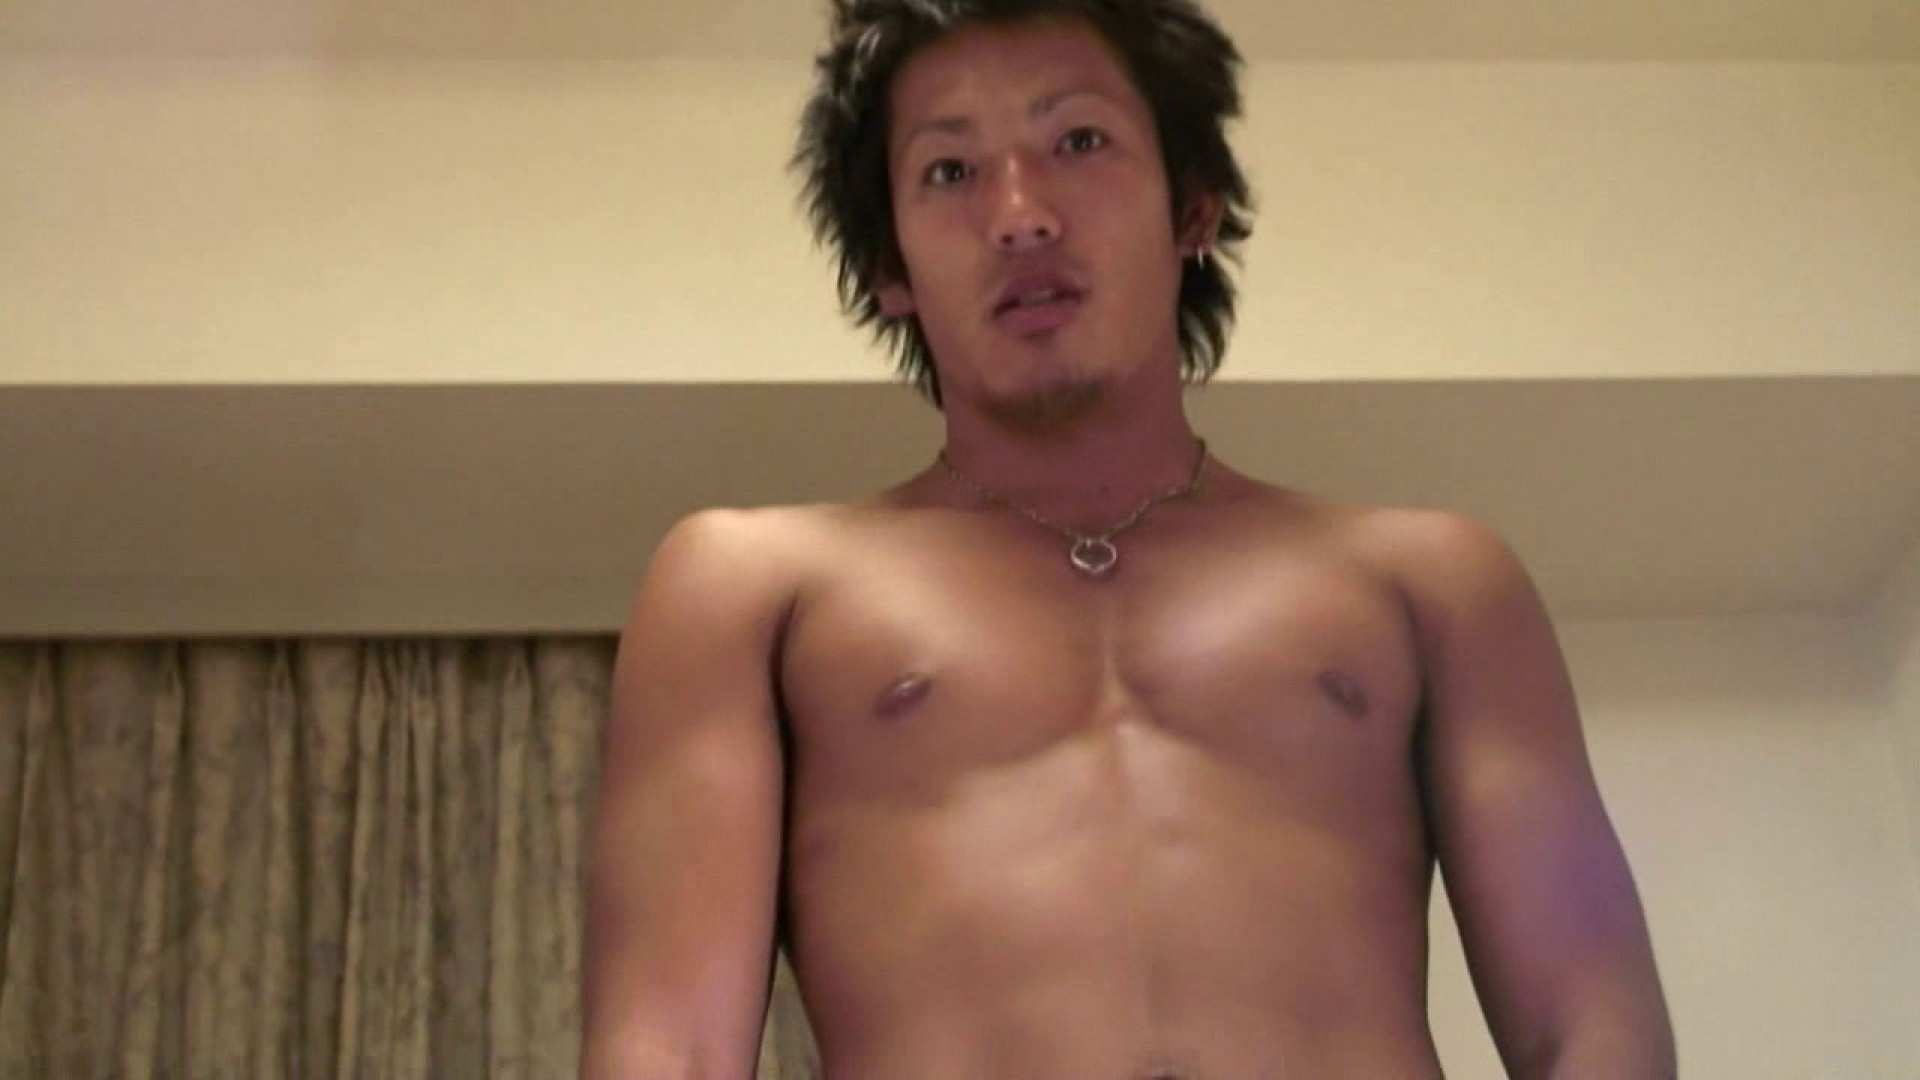 muscle warrior ~男根肉弾戦~03 男・男 ゲイエロビデオ画像 98pic 4